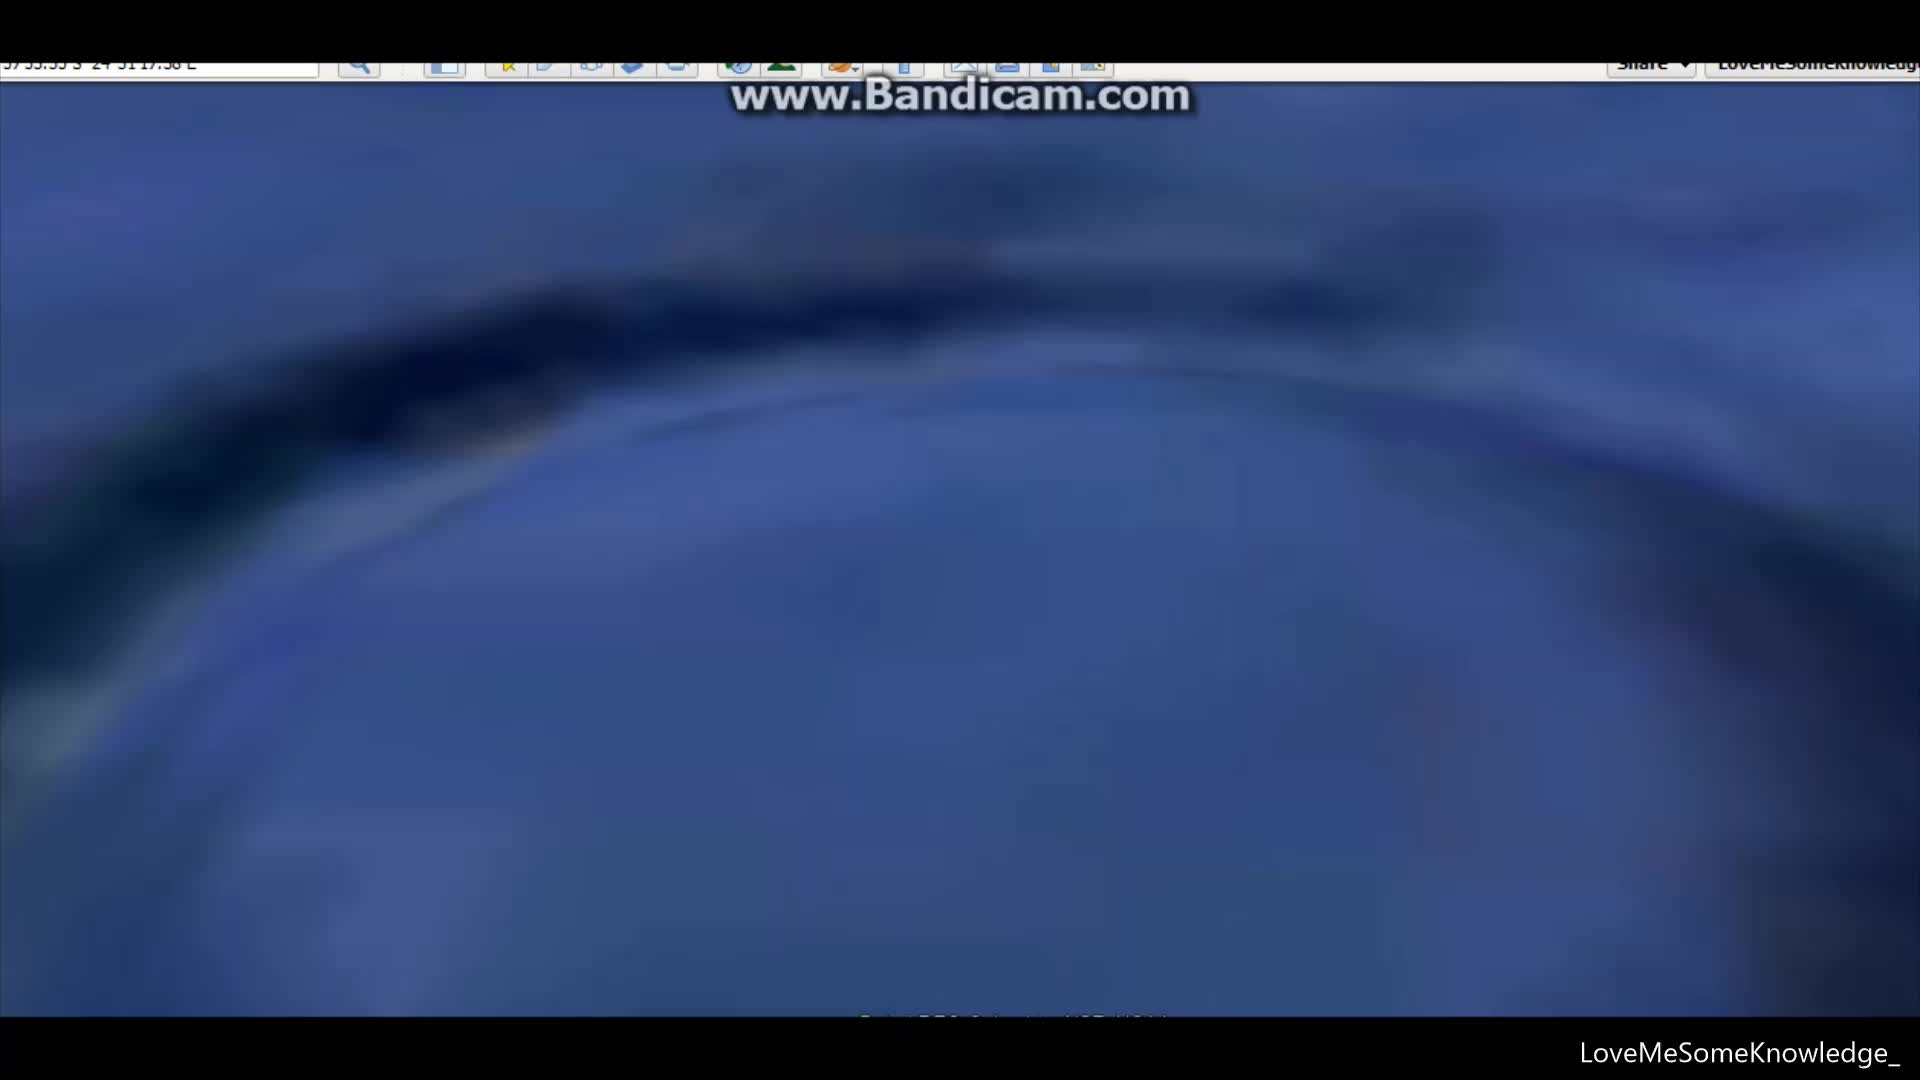 Weird Grid Outlines in the Pacific by Panama plus a crater or mound. Location Given.